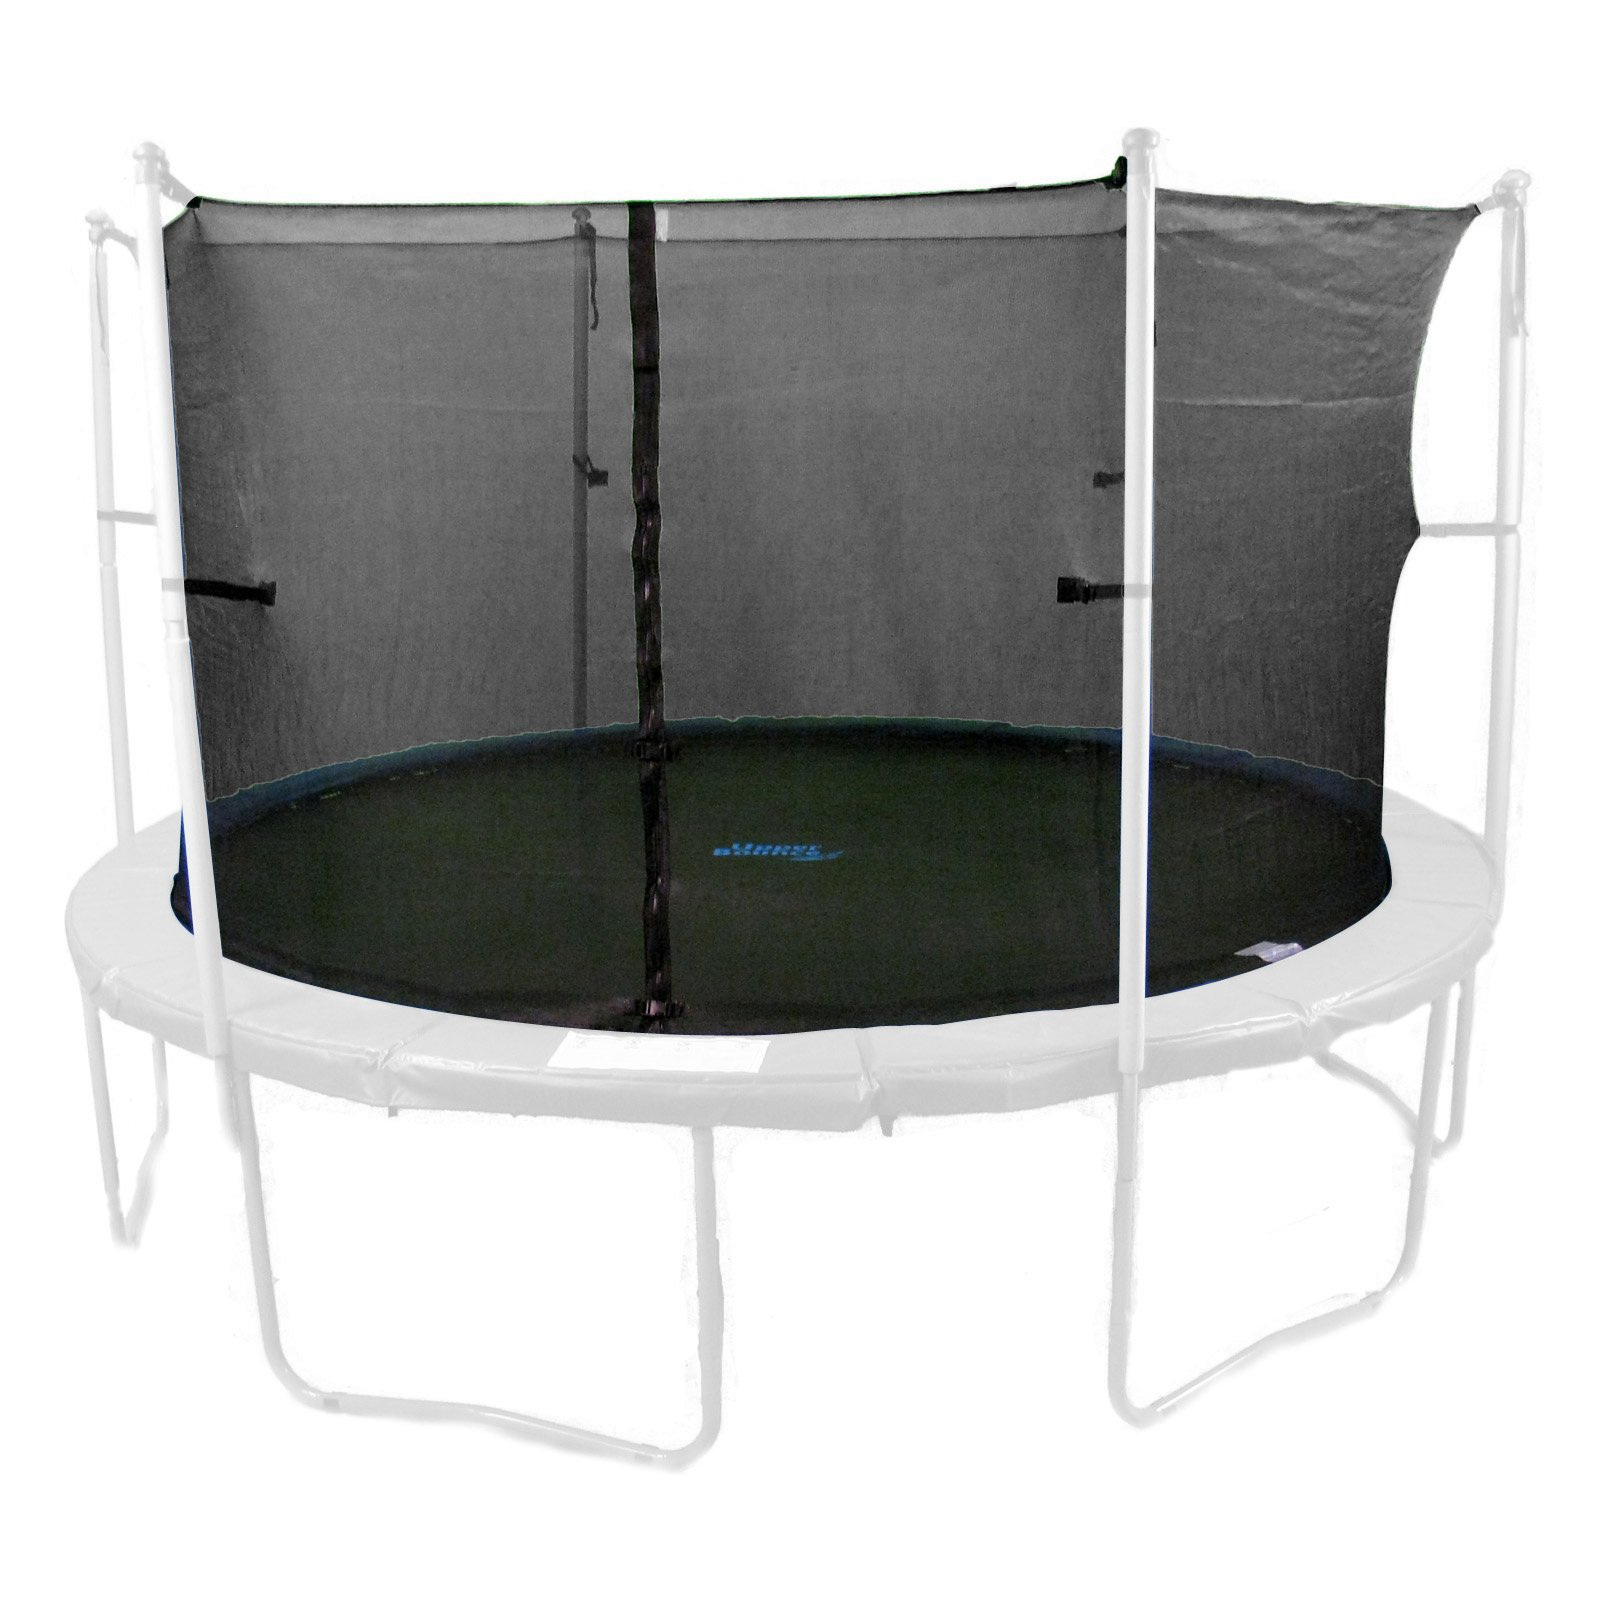 Trampoline Enclosure Safety Net (10 ft. Using 4 Poles or 2 Arches)